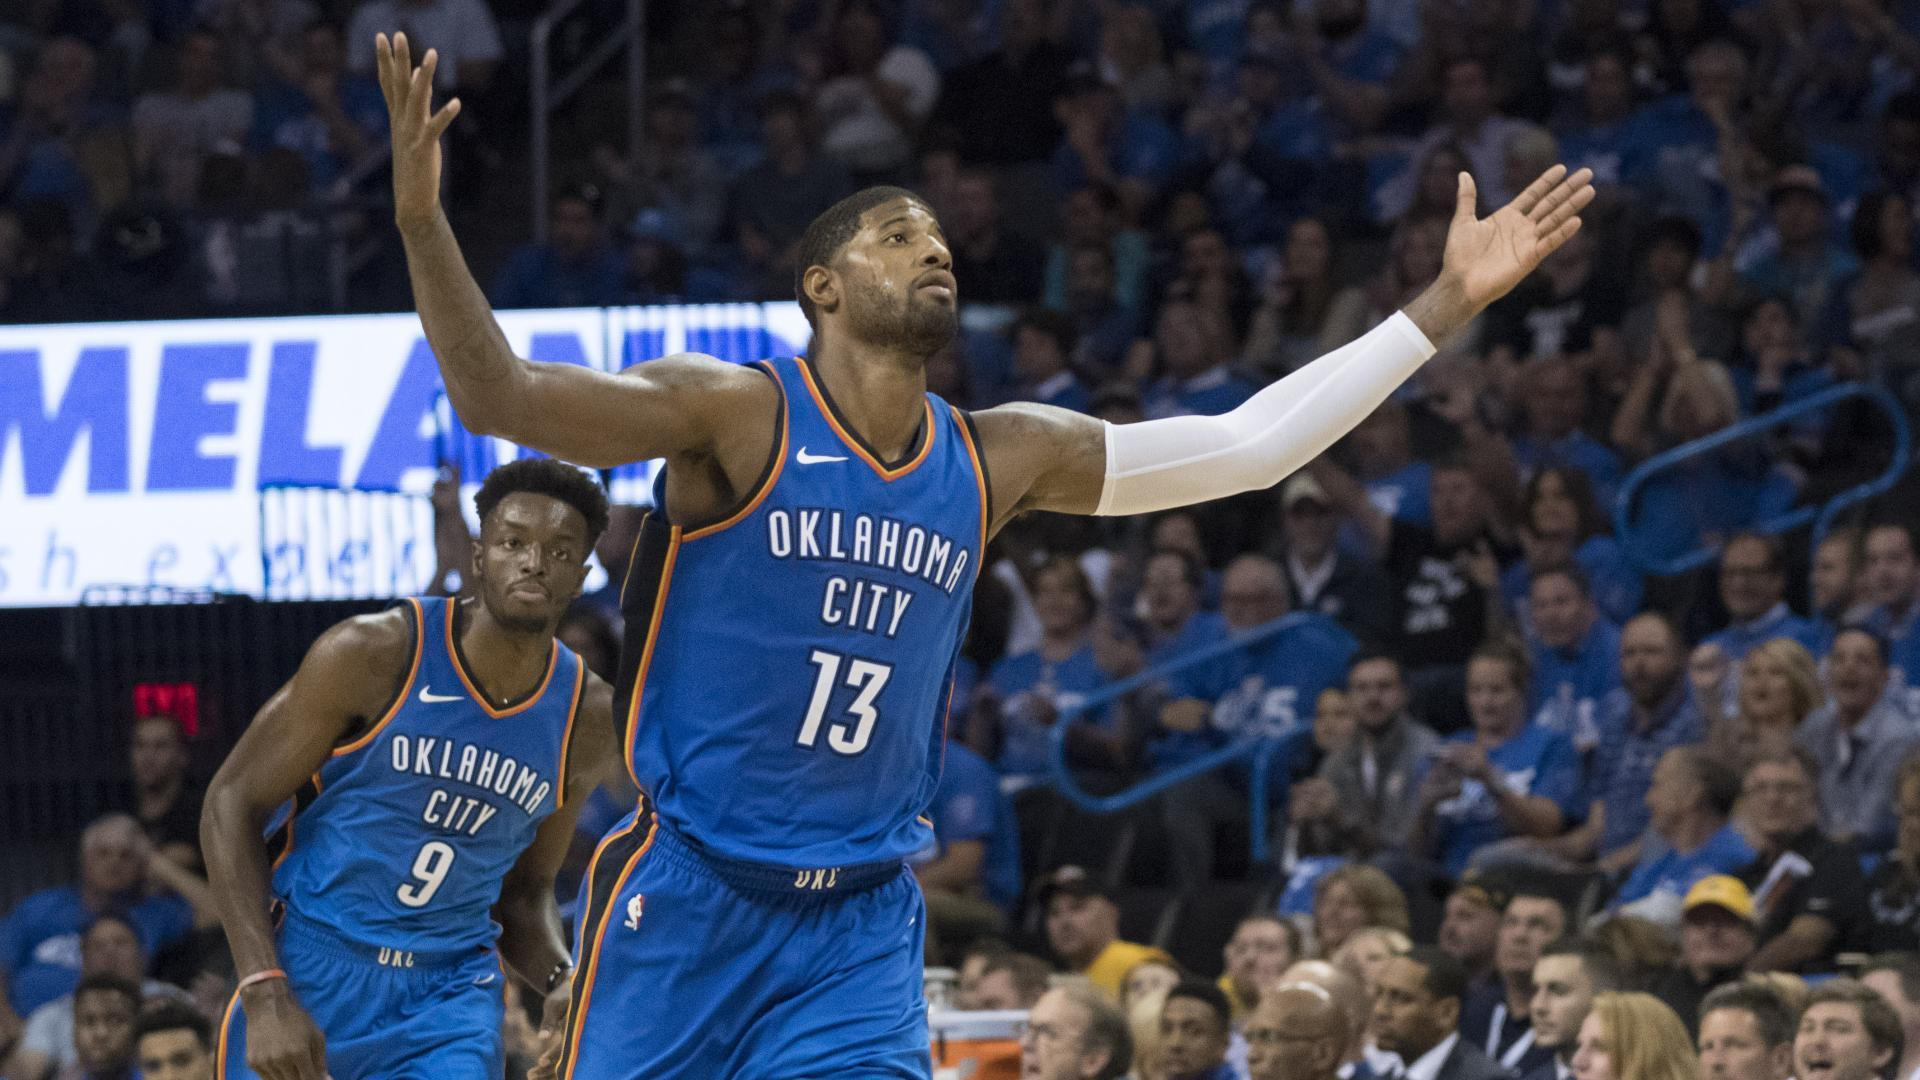 Thunder news: Paul George says it's good for OKC to struggle early